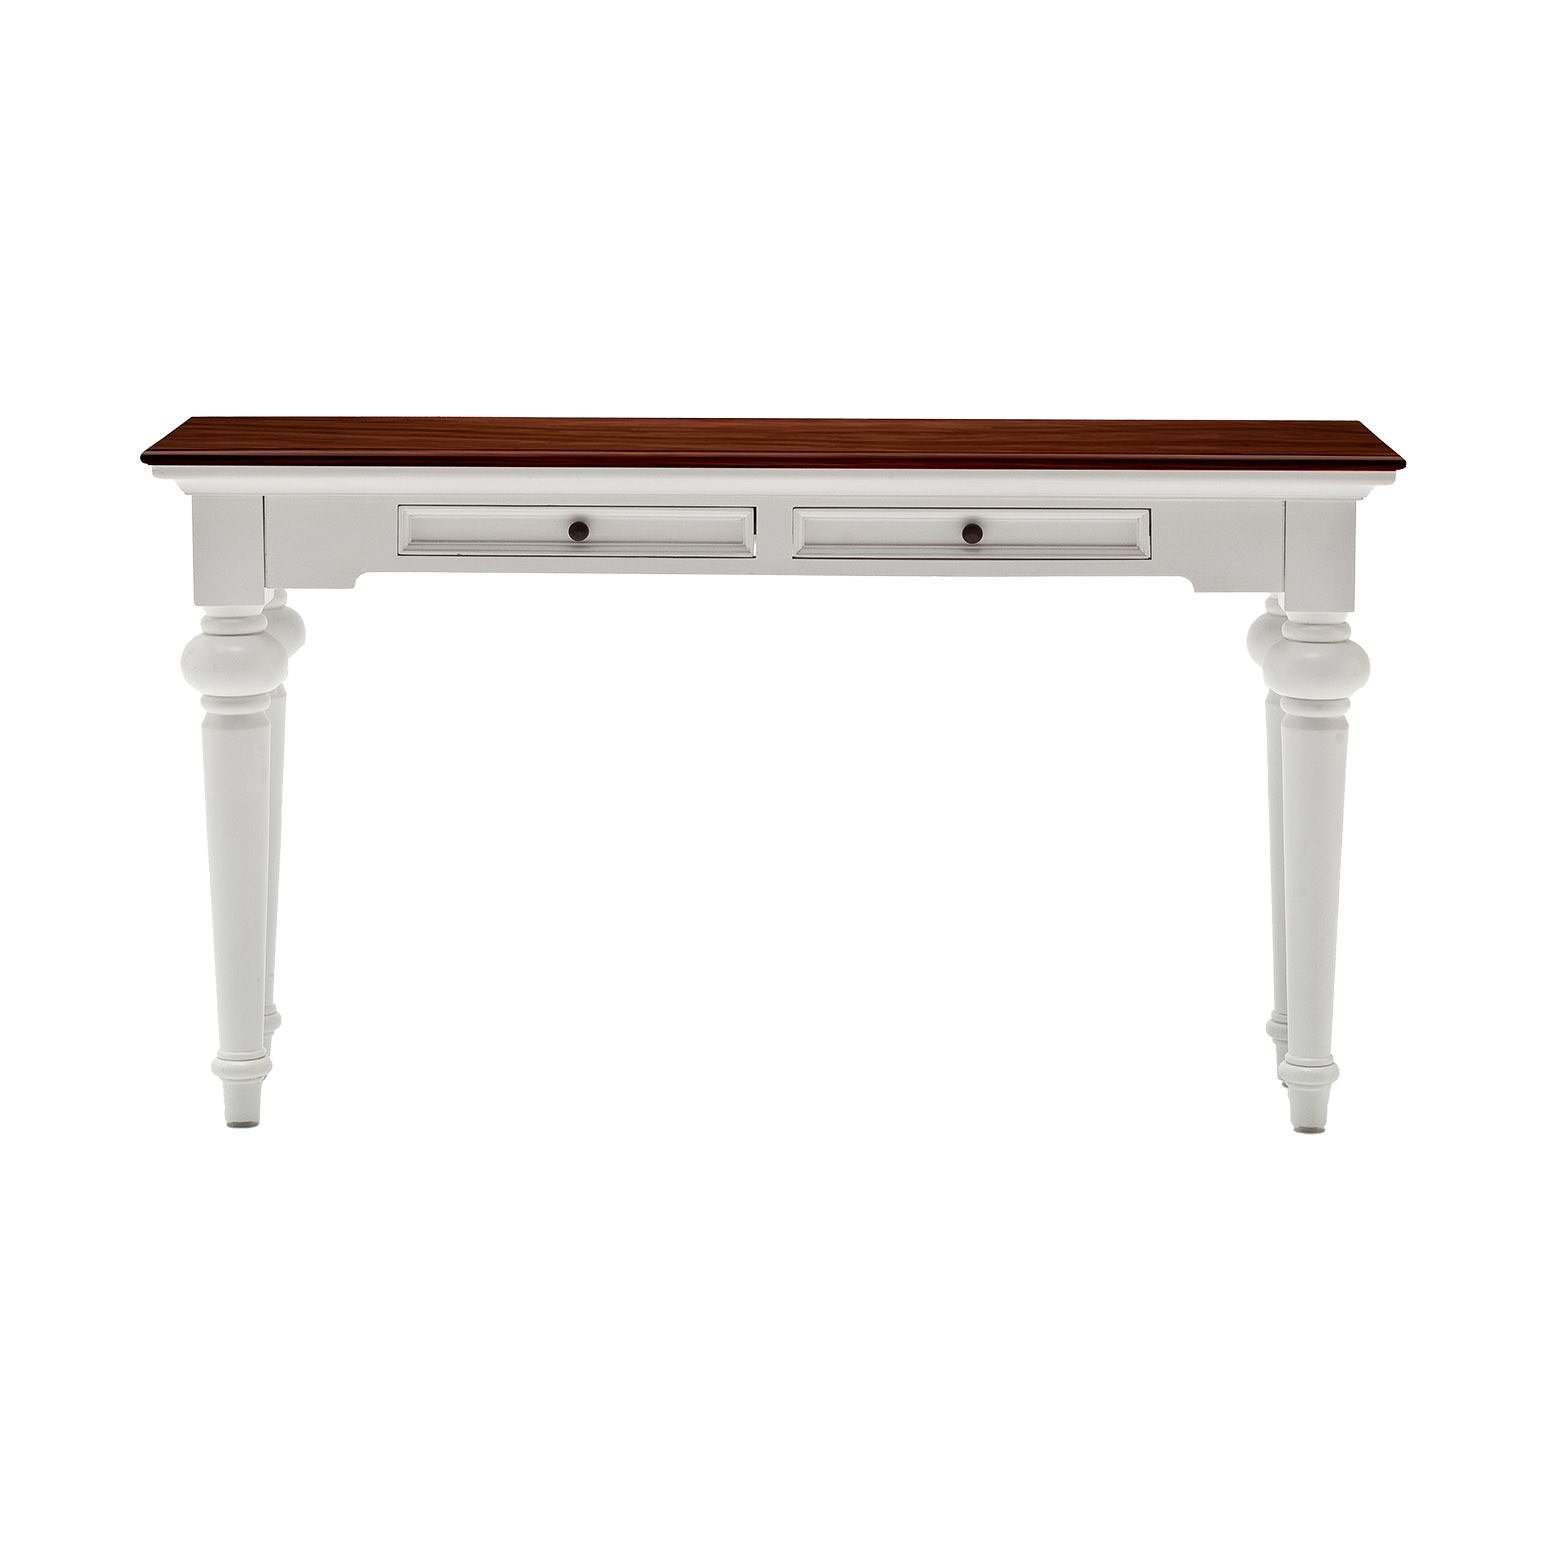 Provence Contrast Mahogany Timber Console Table, 140cm, Brown / White